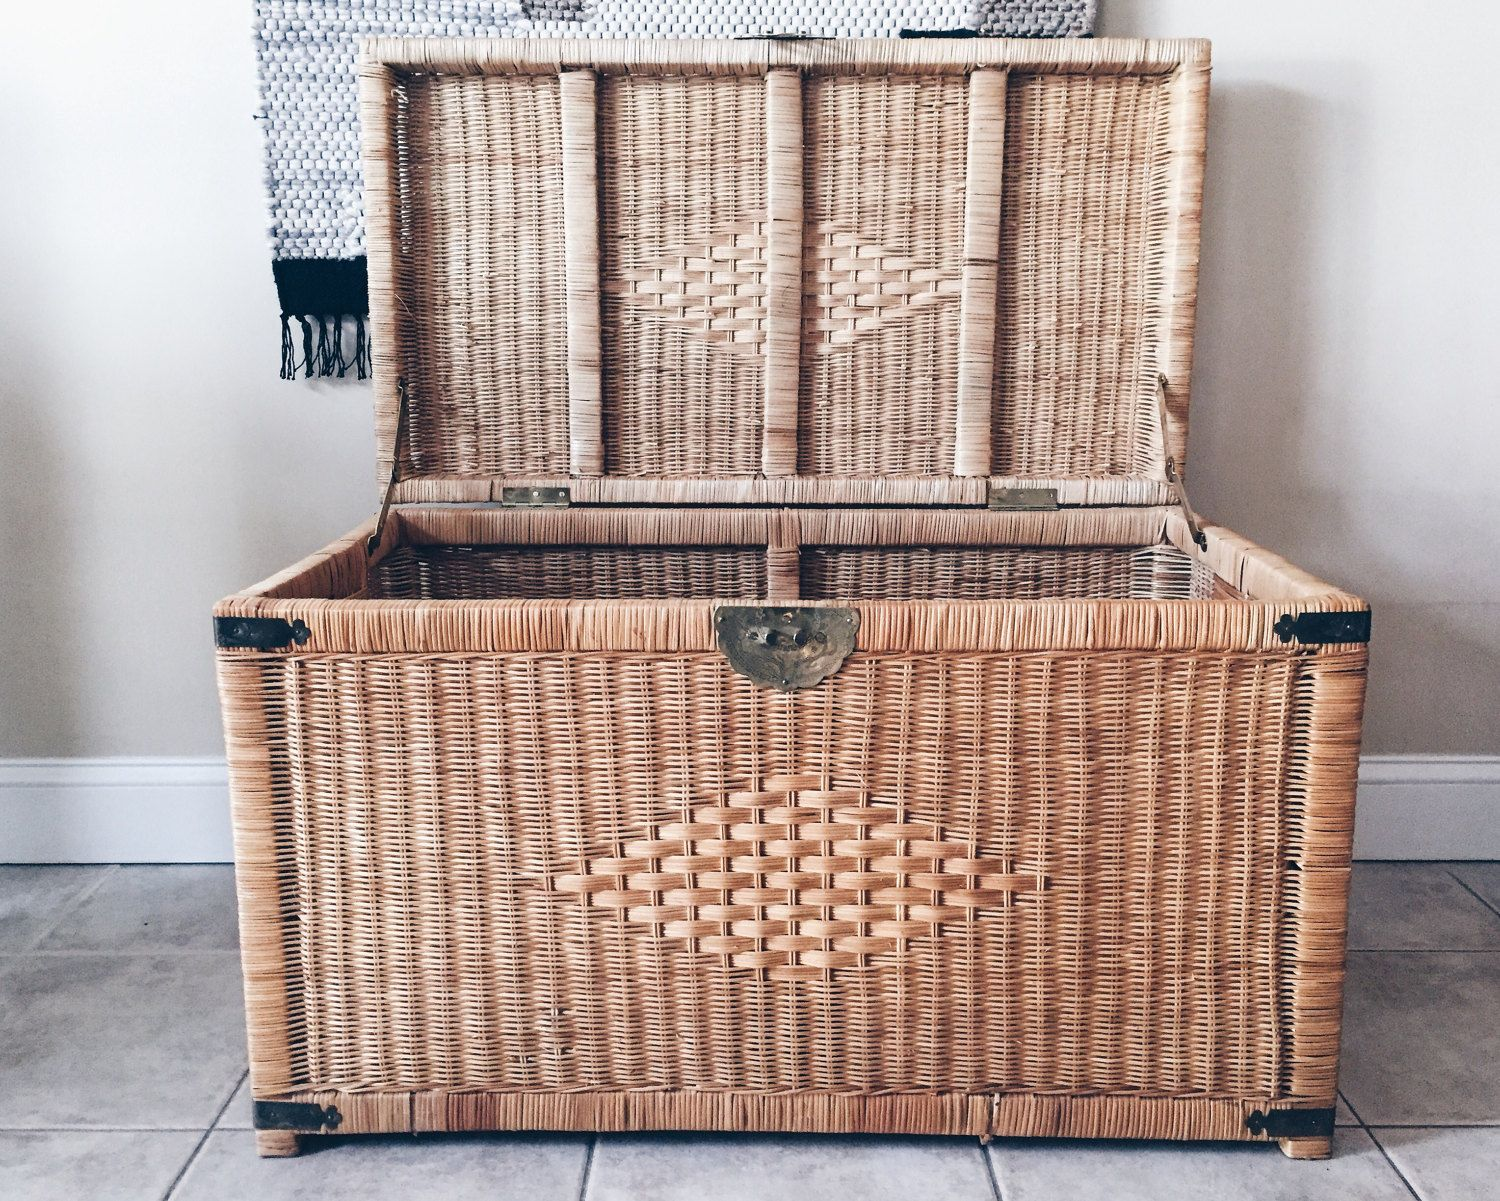 Vintage Wicker Trunk With Brass Hardware, Rattan Chest, Wicker Coffee  Table, Wicker Blanket